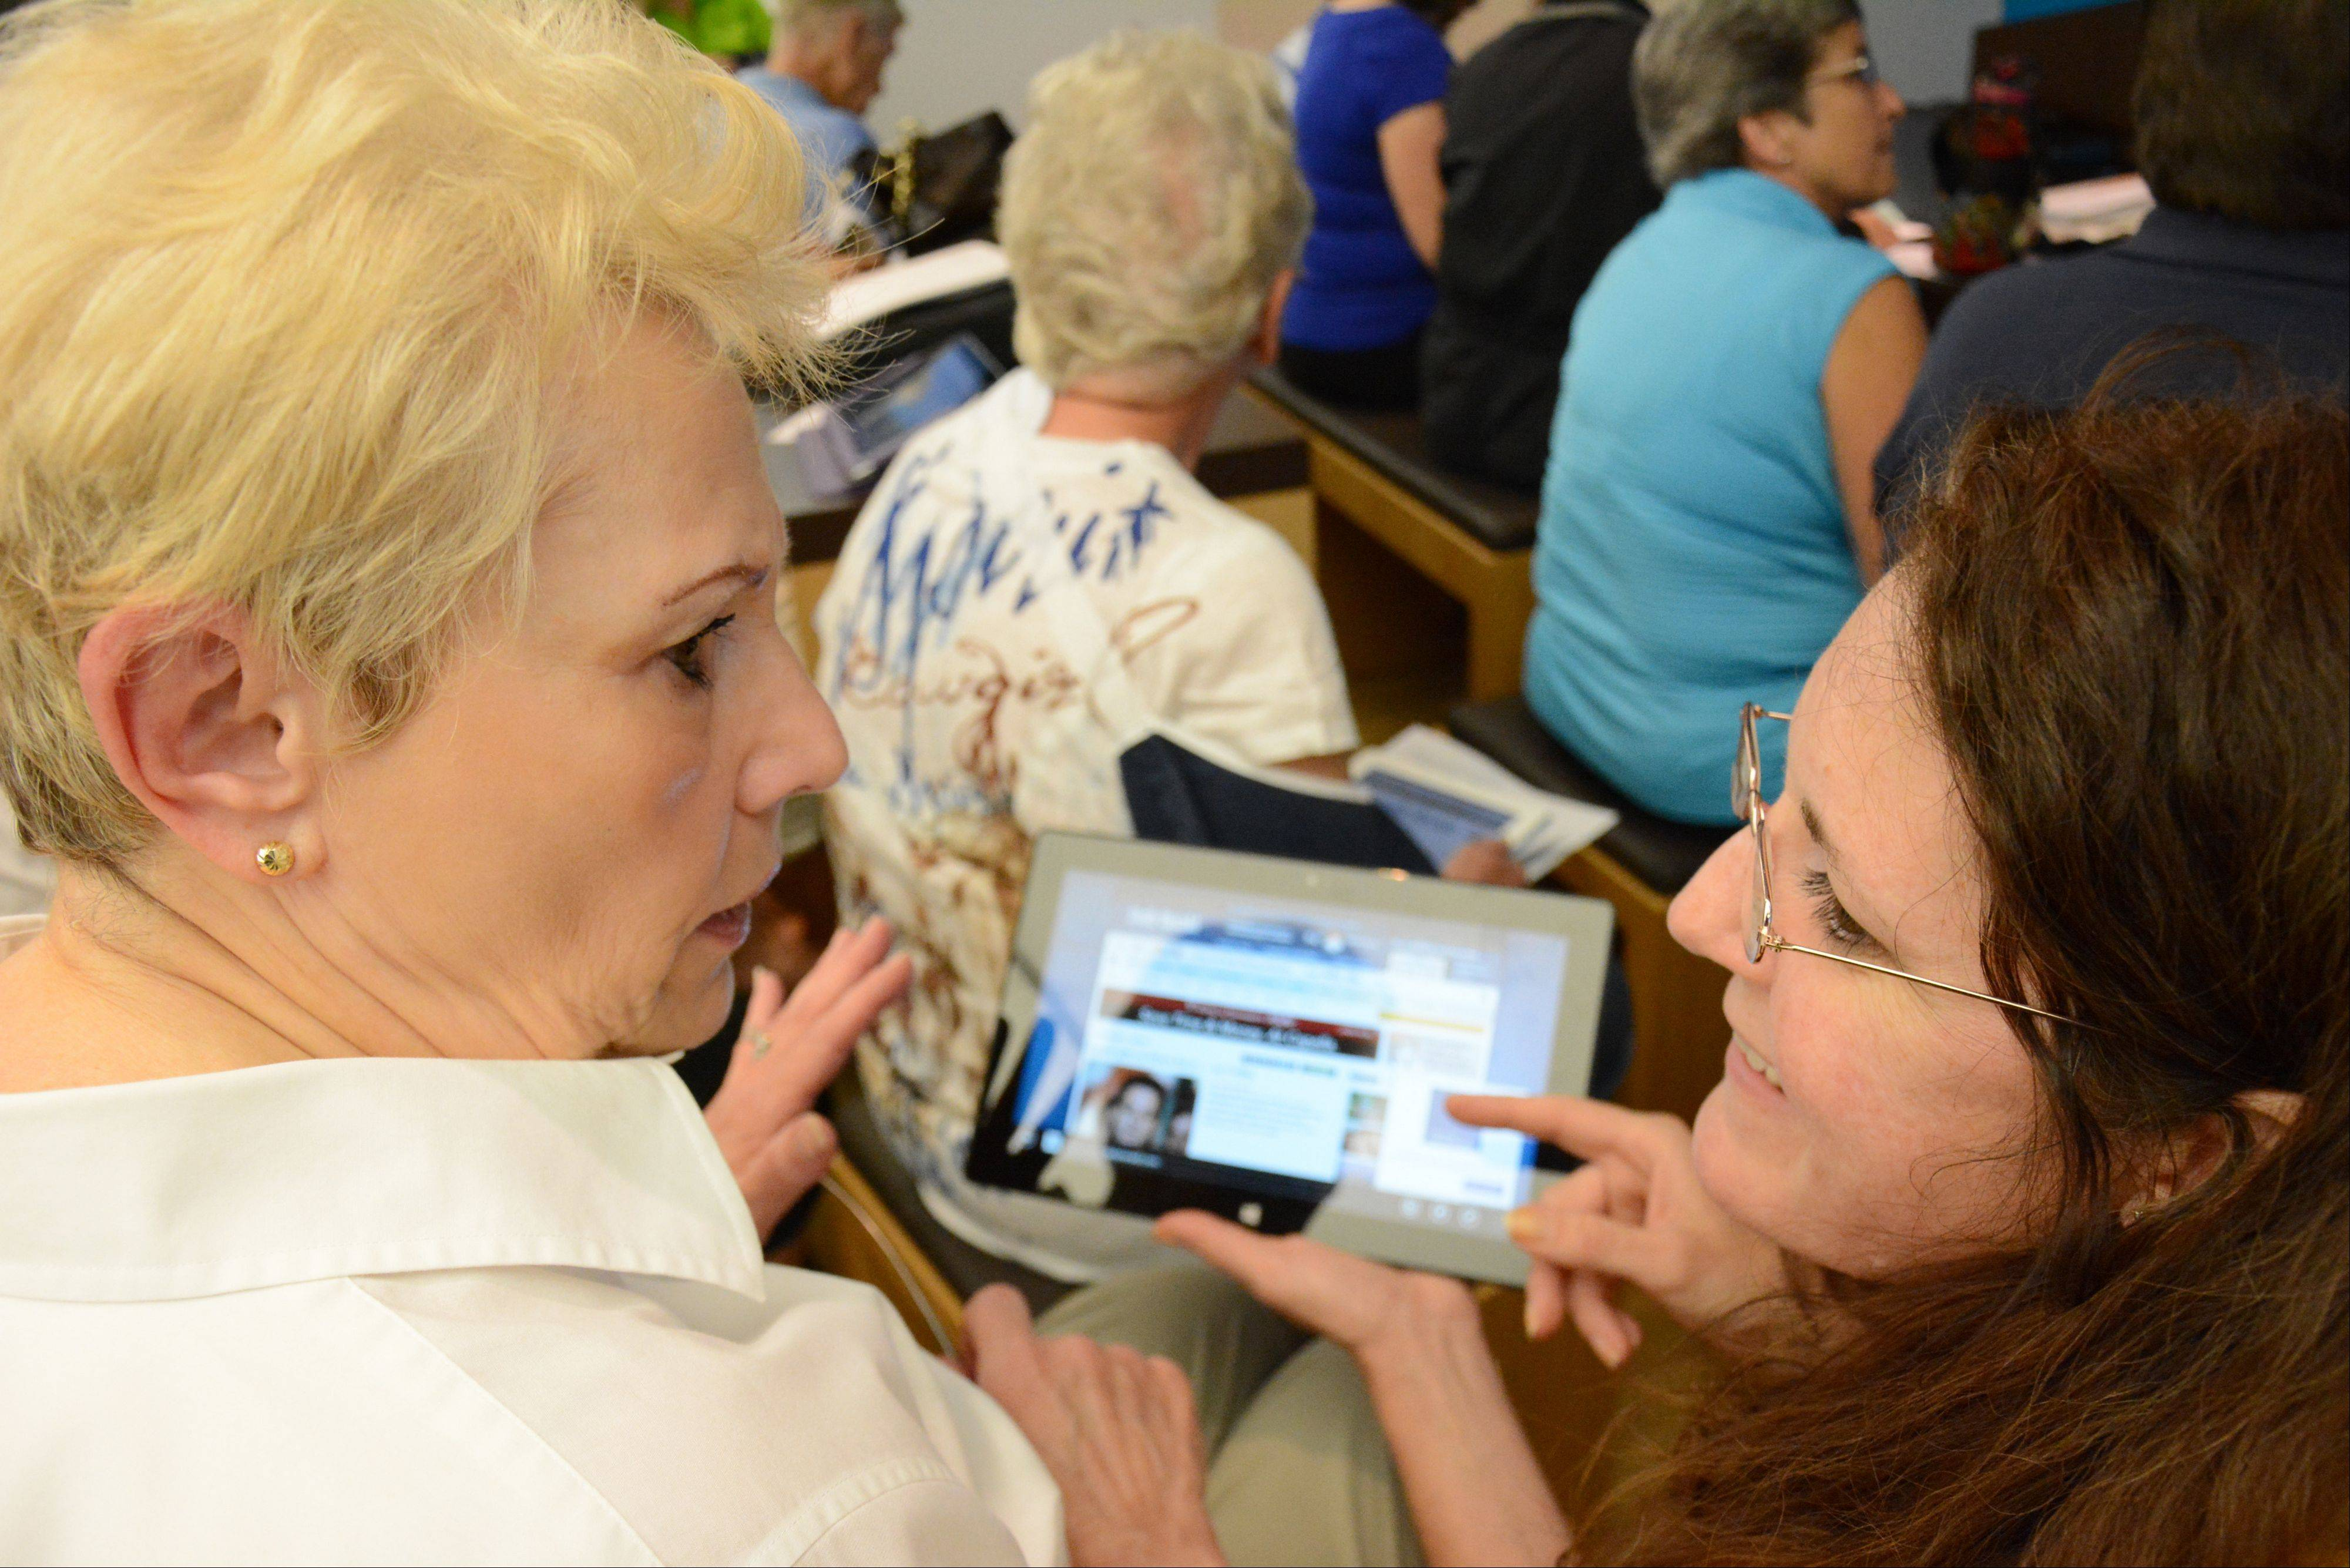 Barbara Corsi, left, of Mount Prospect, asks for help navigating the Daily Herald app from Rose May, Microsoft community development specialist.